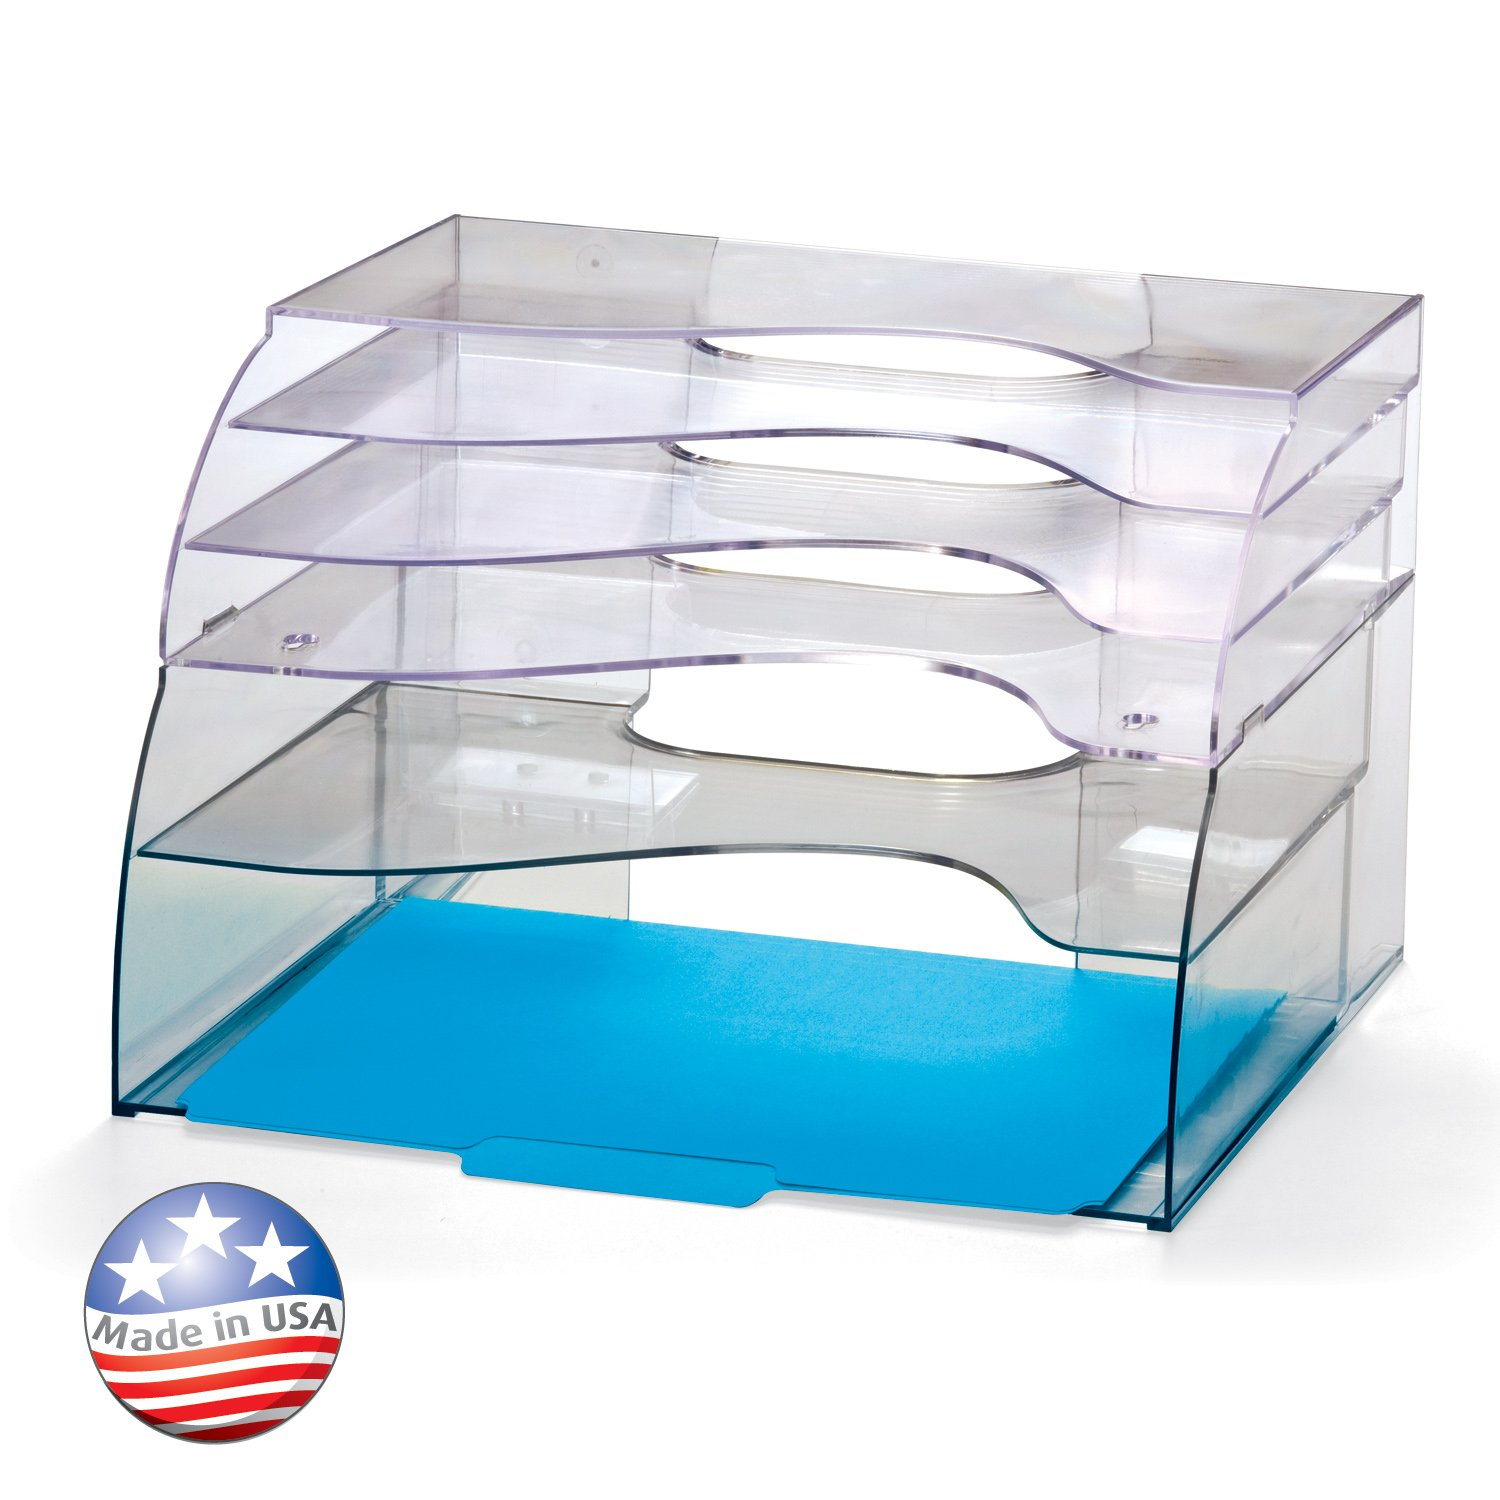 Officemate Two-Way Organizer, 5-Tier, Clear (22924)